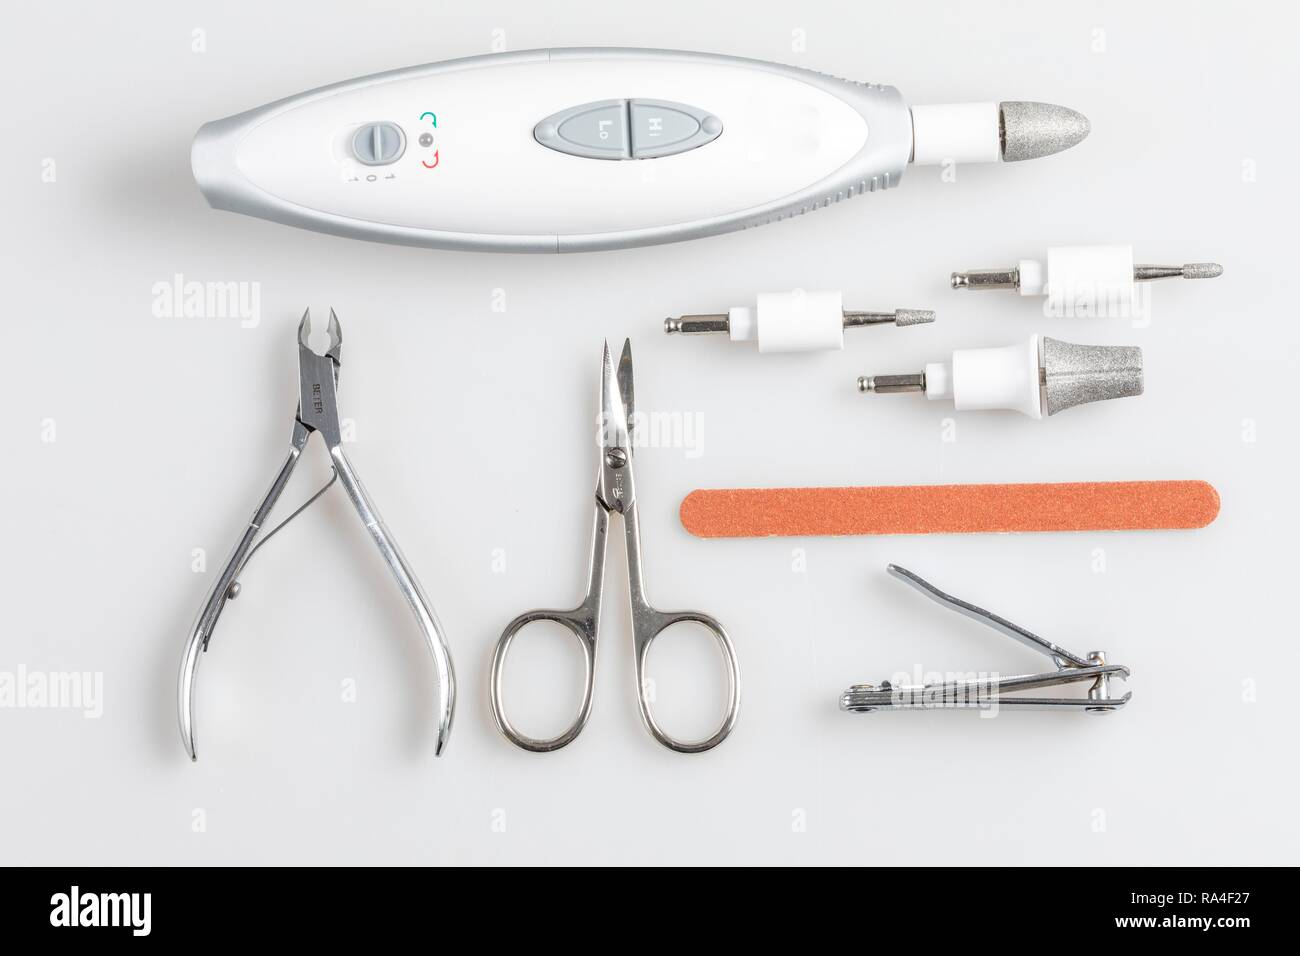 Nail care tools, nail clippers, nail scissors, nail pliers, electric nail file with various grinding heads - Stock Image